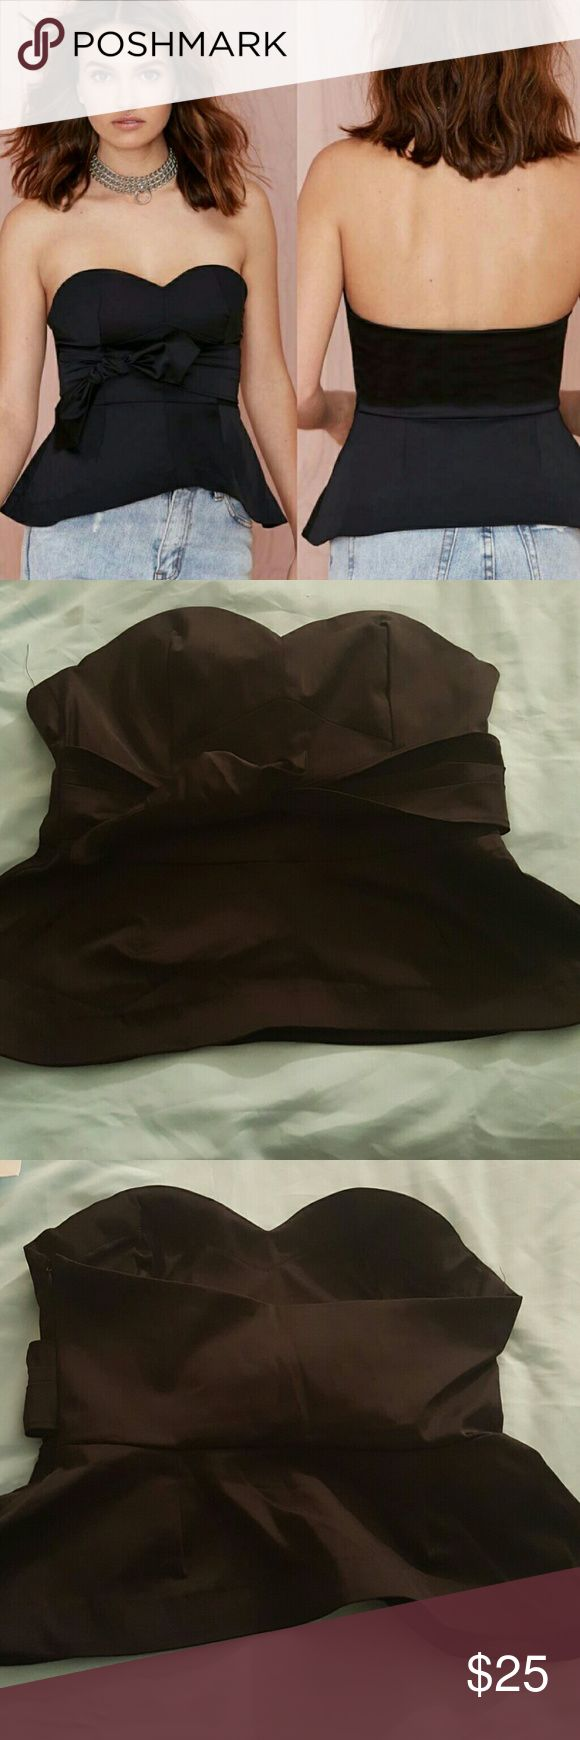 Sale Nasty gal night owl bustier Nwot black strapless bustier smoke free pet free home.  Pair this, with a cute pair of jeans and some hot pumps... for a night on the town with your friends. Nasty Gal Intimates & Sleepwear Bandeaus